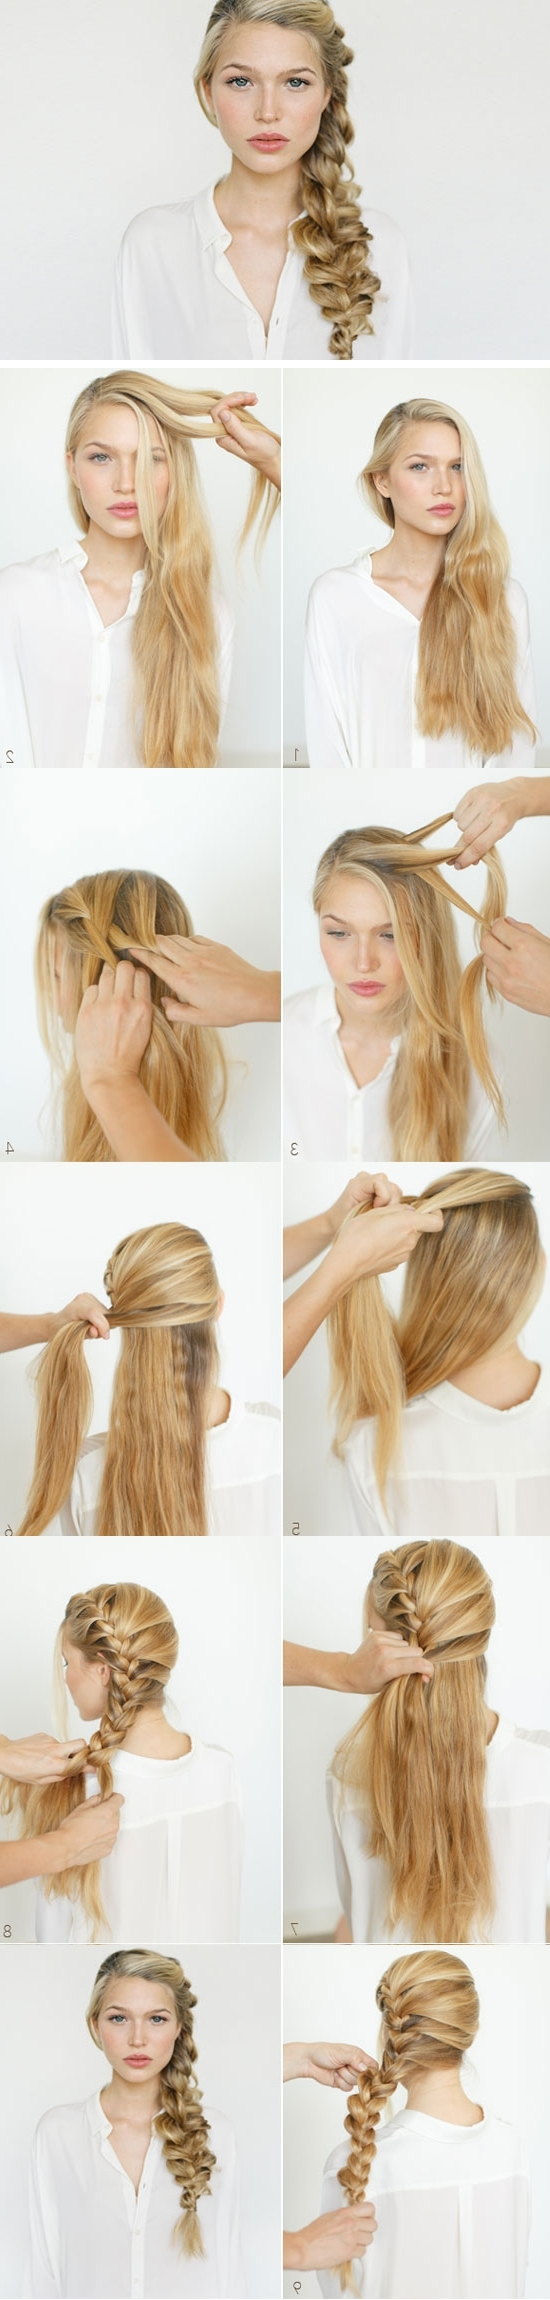 Trendy Diy Wedding Hairstyles For Long Hair Intended For Easy Diy Wedding Hairstyles For Long Hair (View 2 of 15)